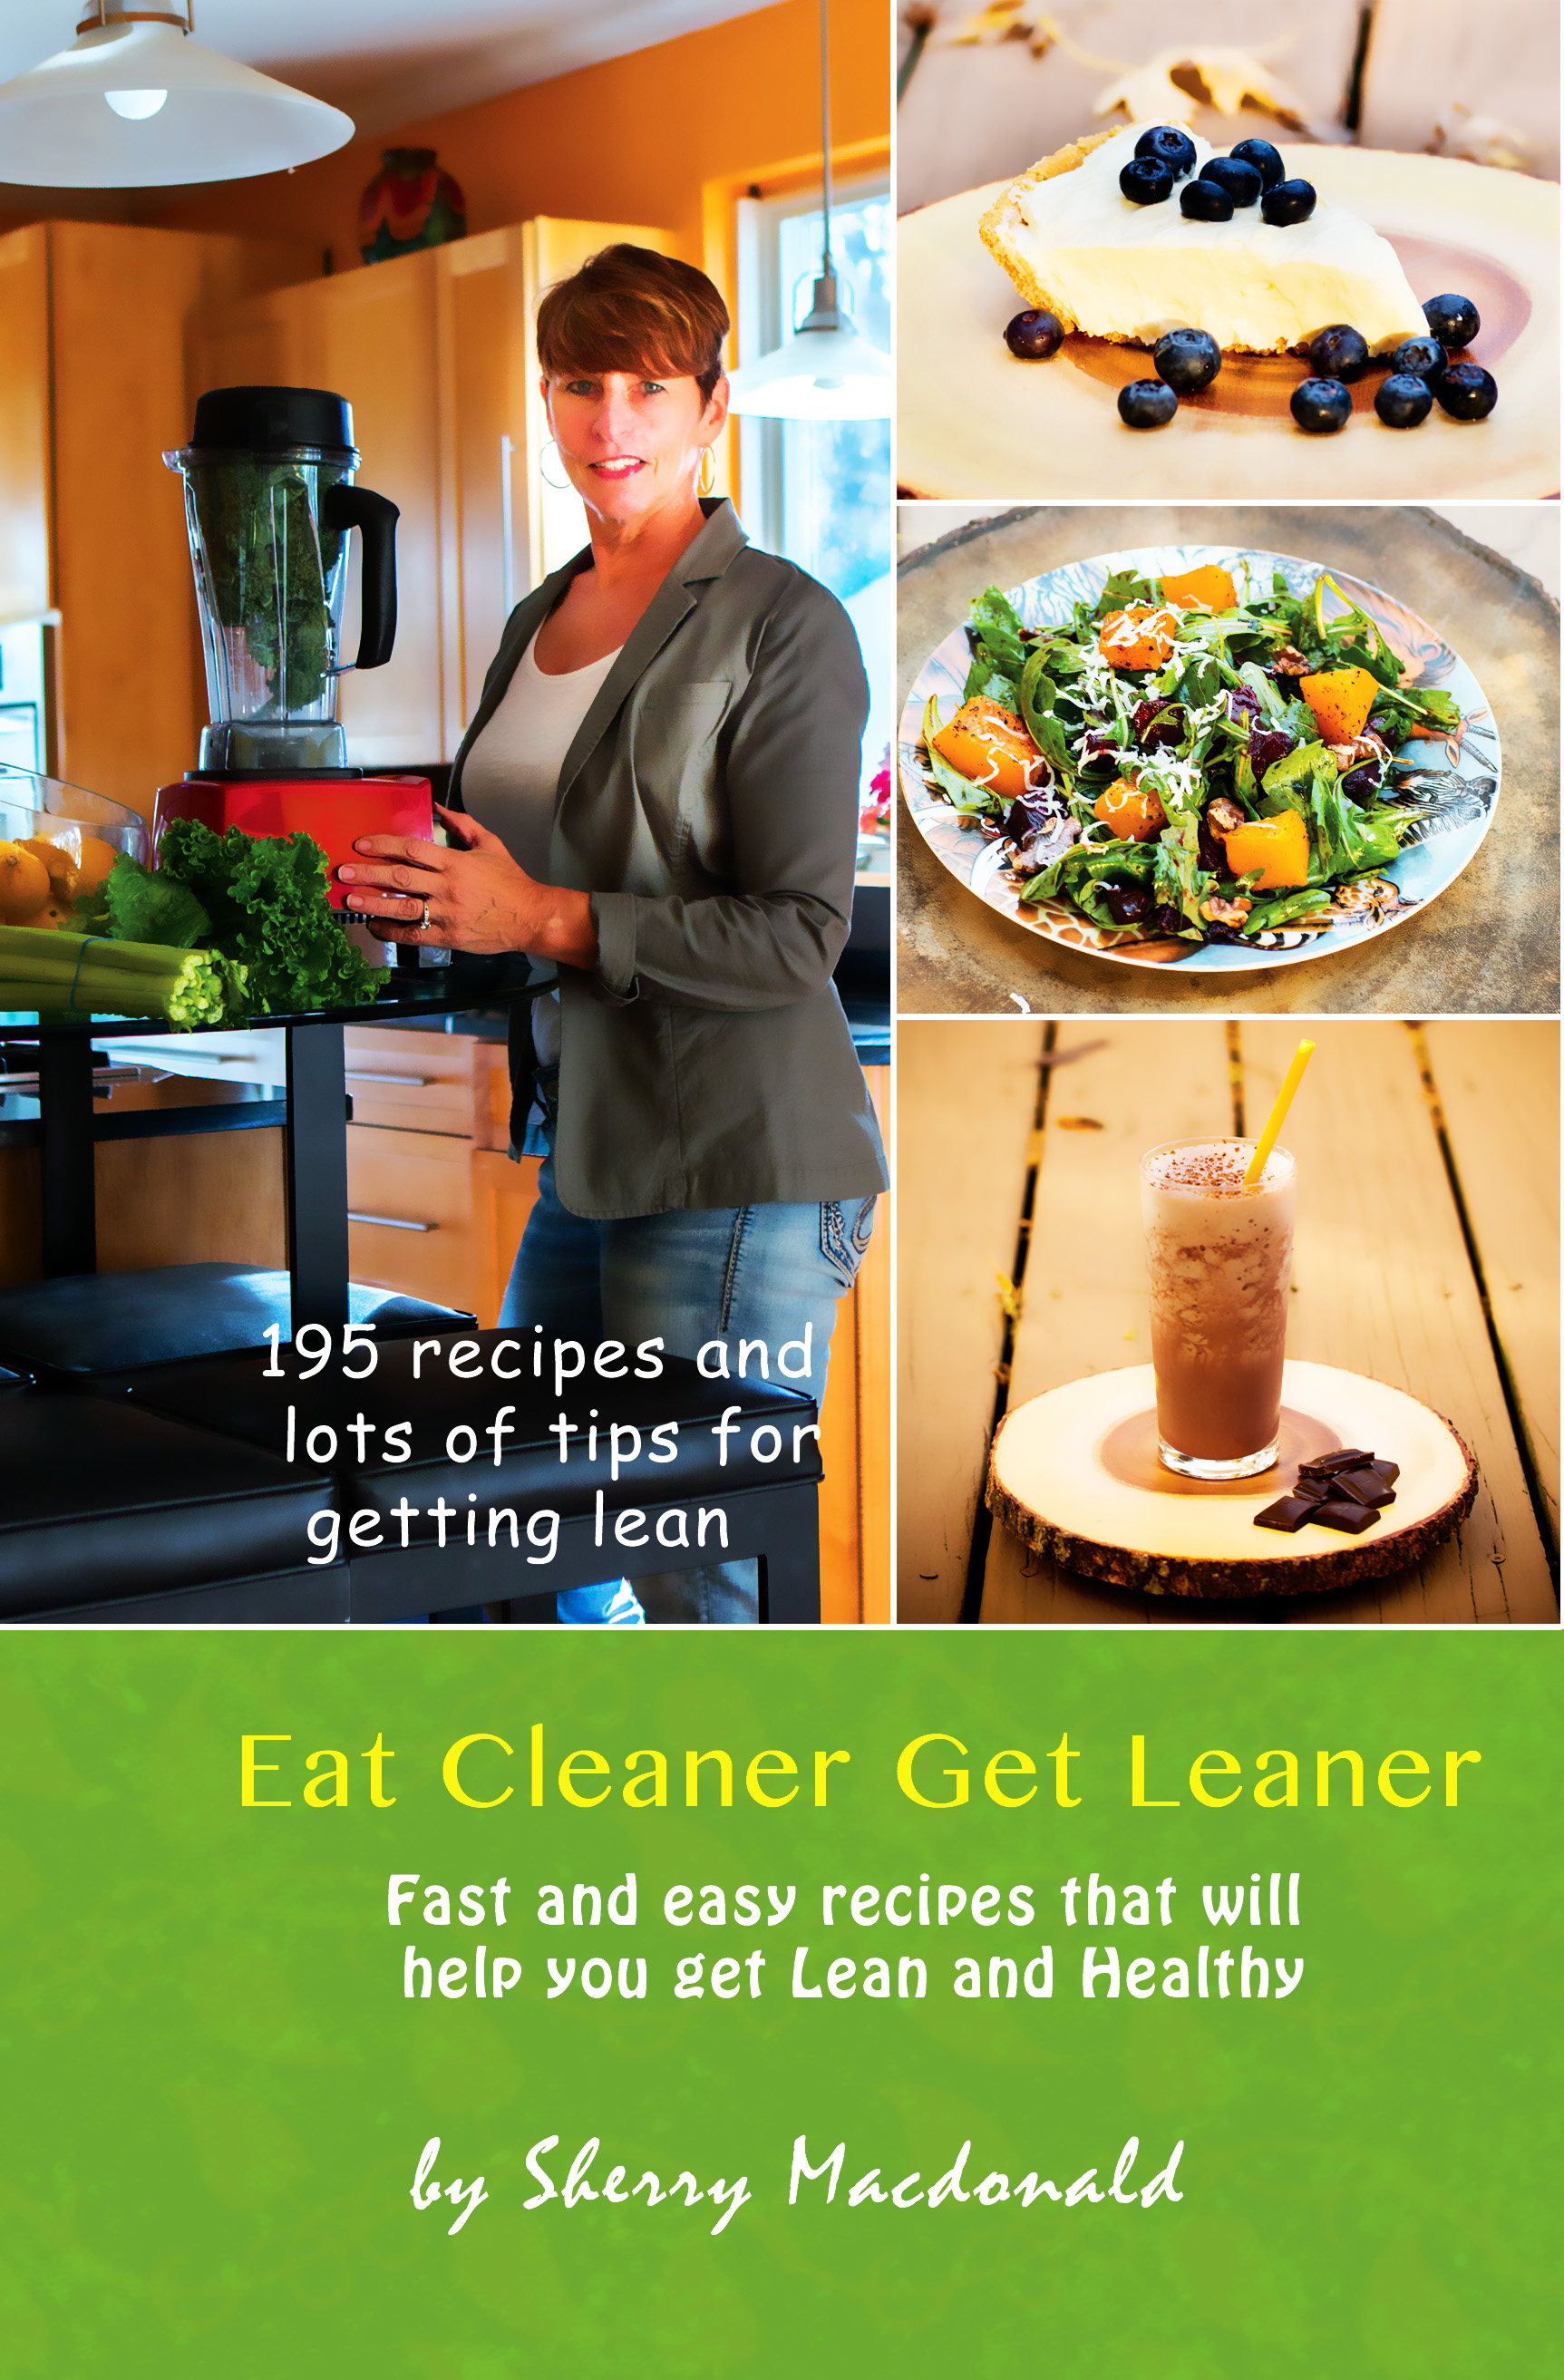 cookbook eat cleaner get leaner